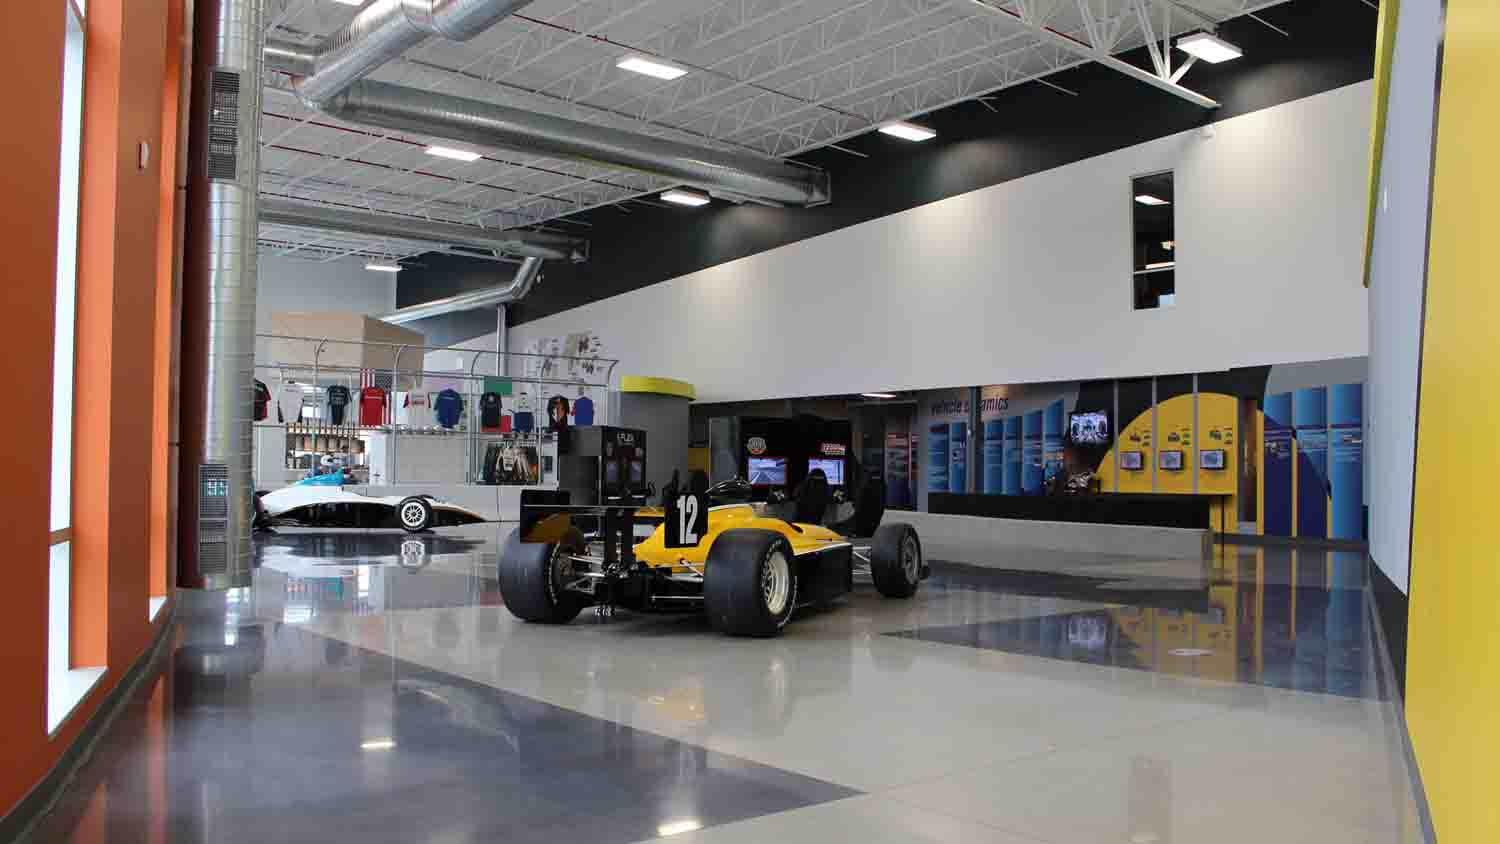 Dallara indycar factory 4